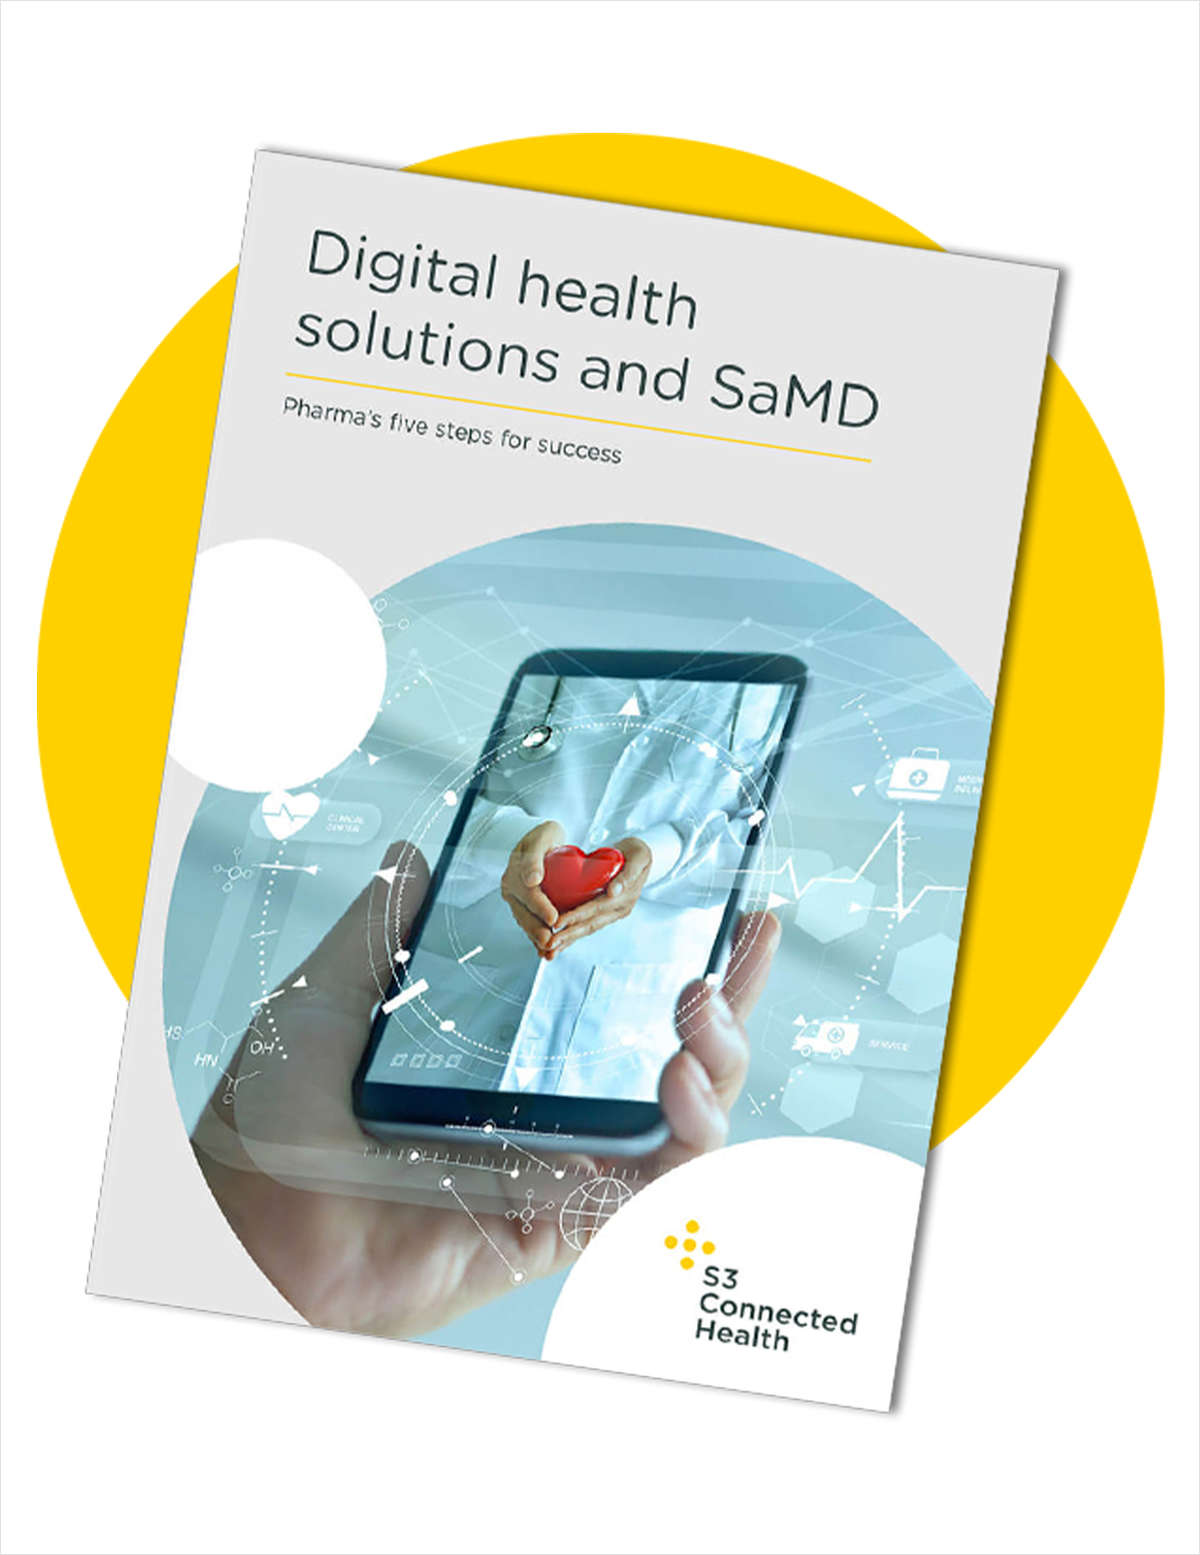 Digital health solutions and SaMD: Pharma's five steps for success